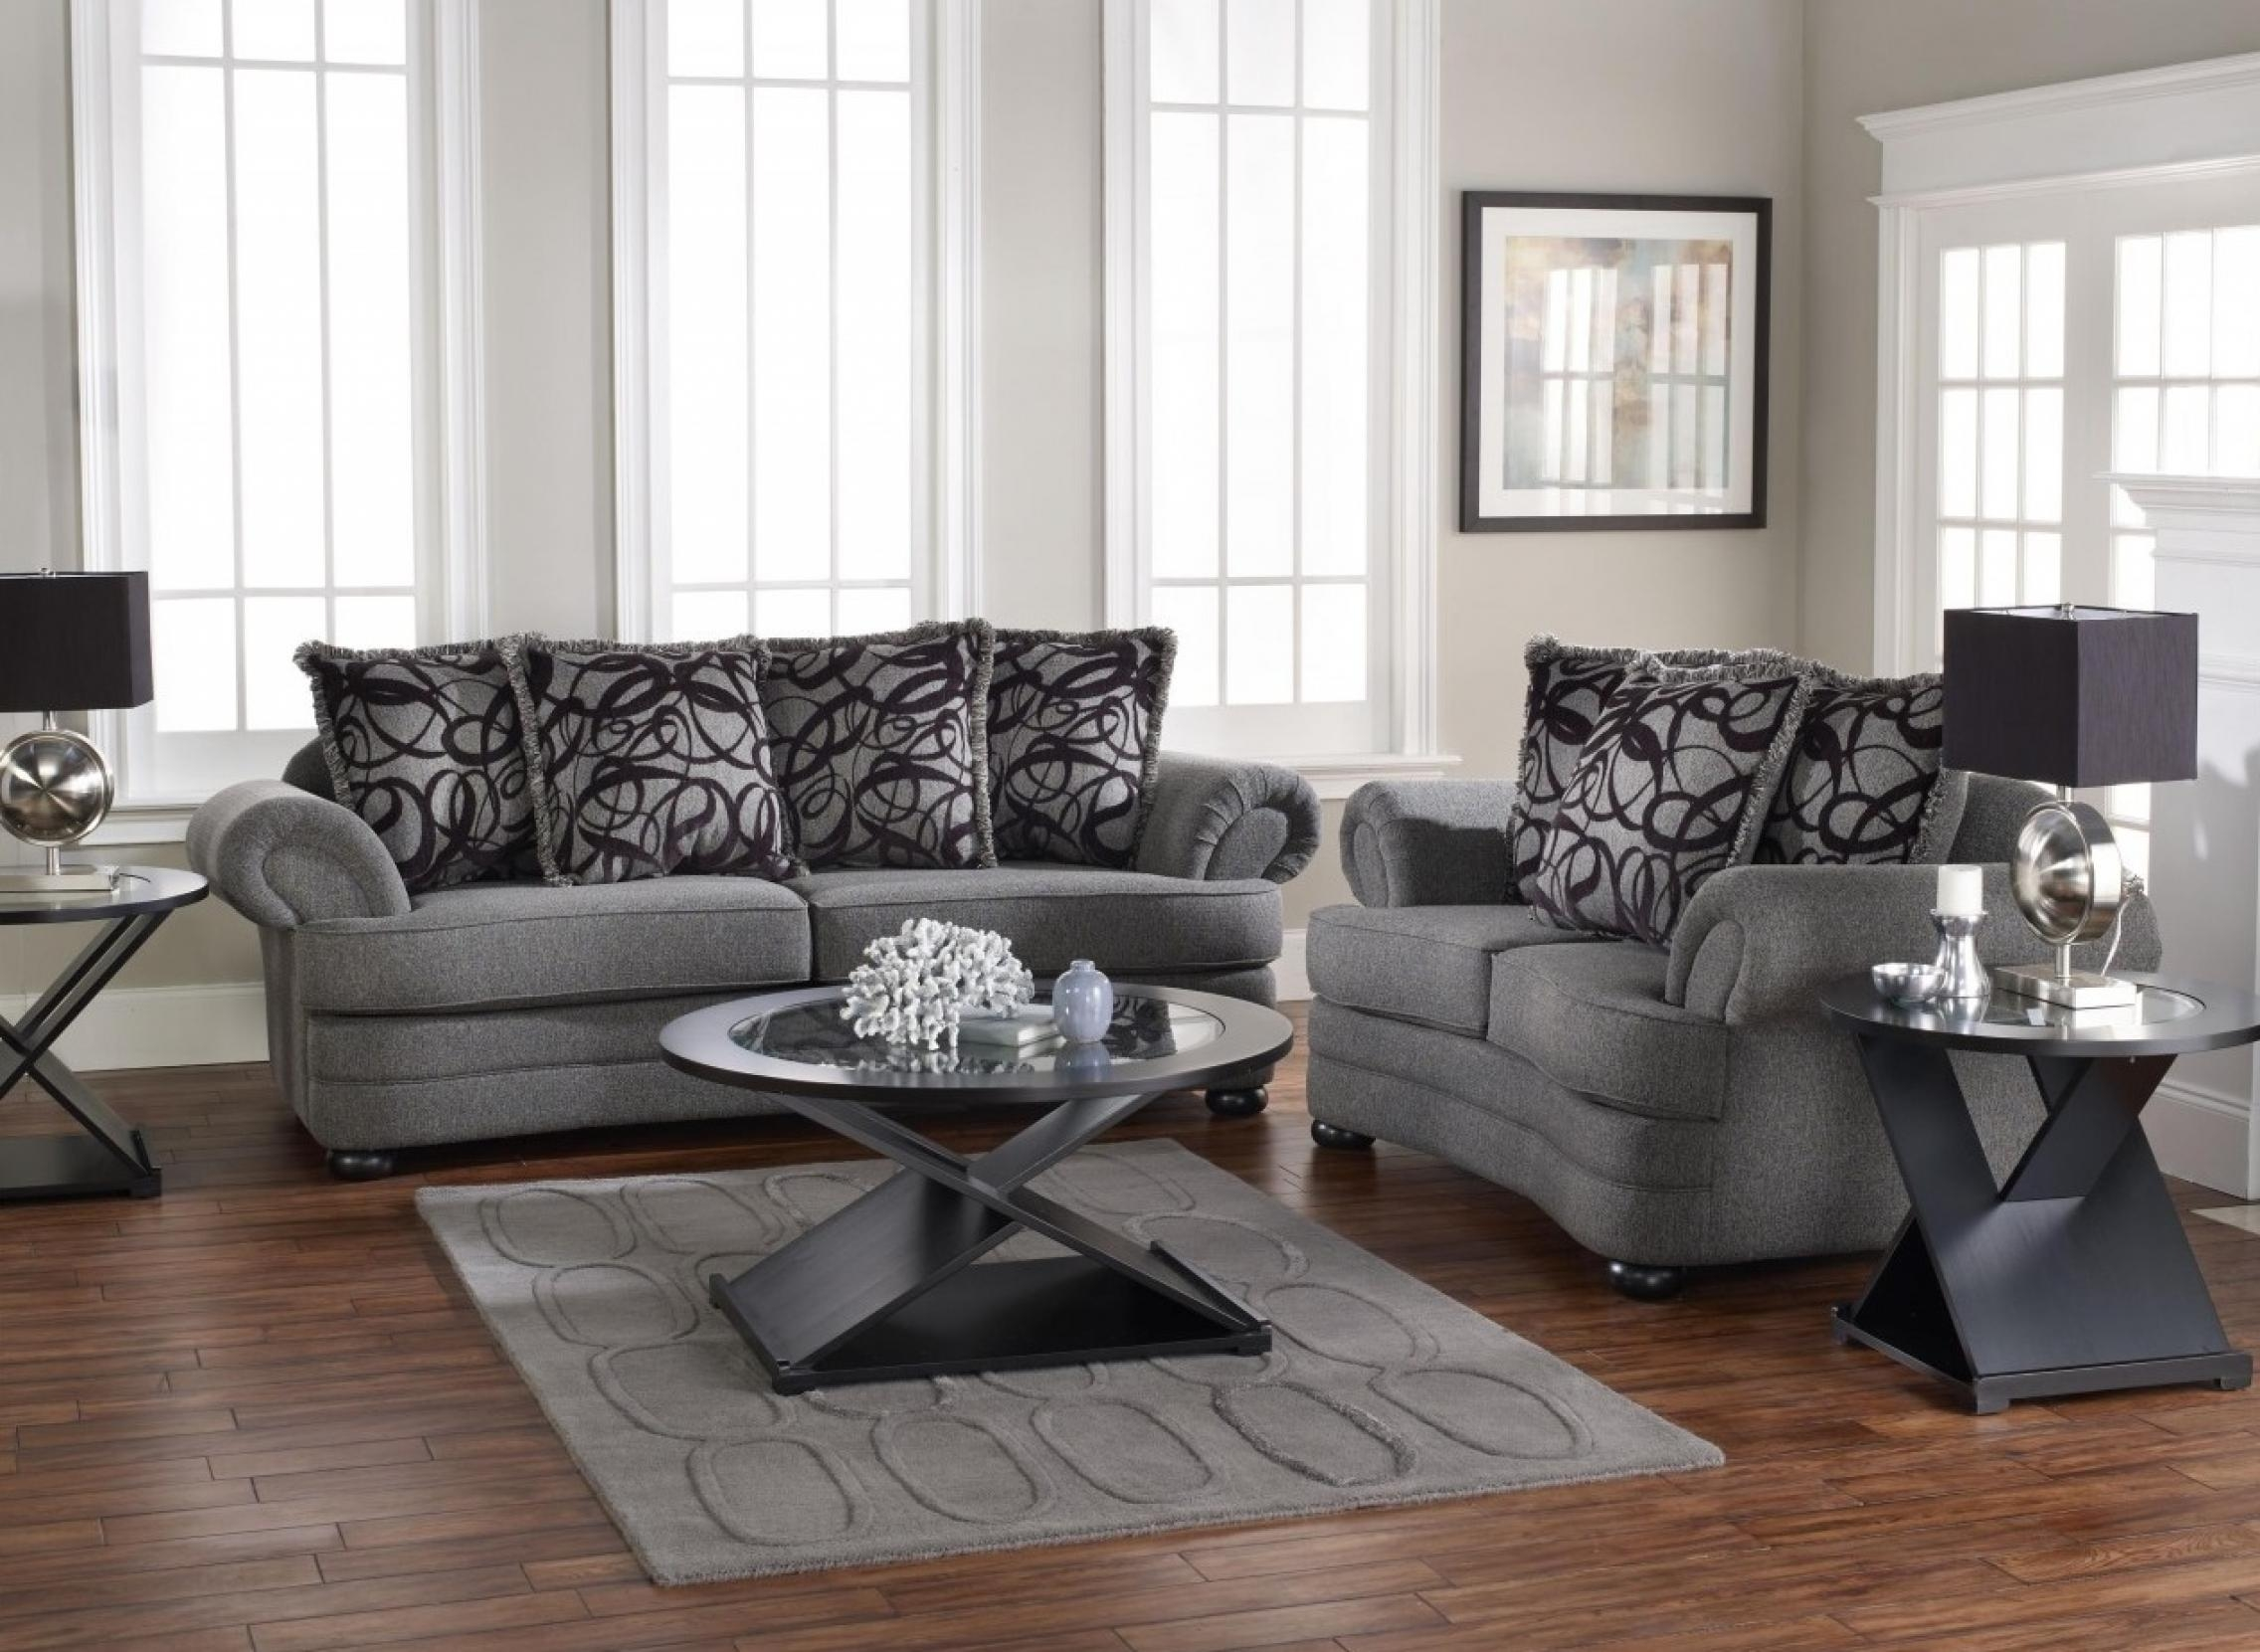 Best Grey Living Room Chairs Contemporary – Home Design Ideas With Grey Sofa Chairs (Image 2 of 20)